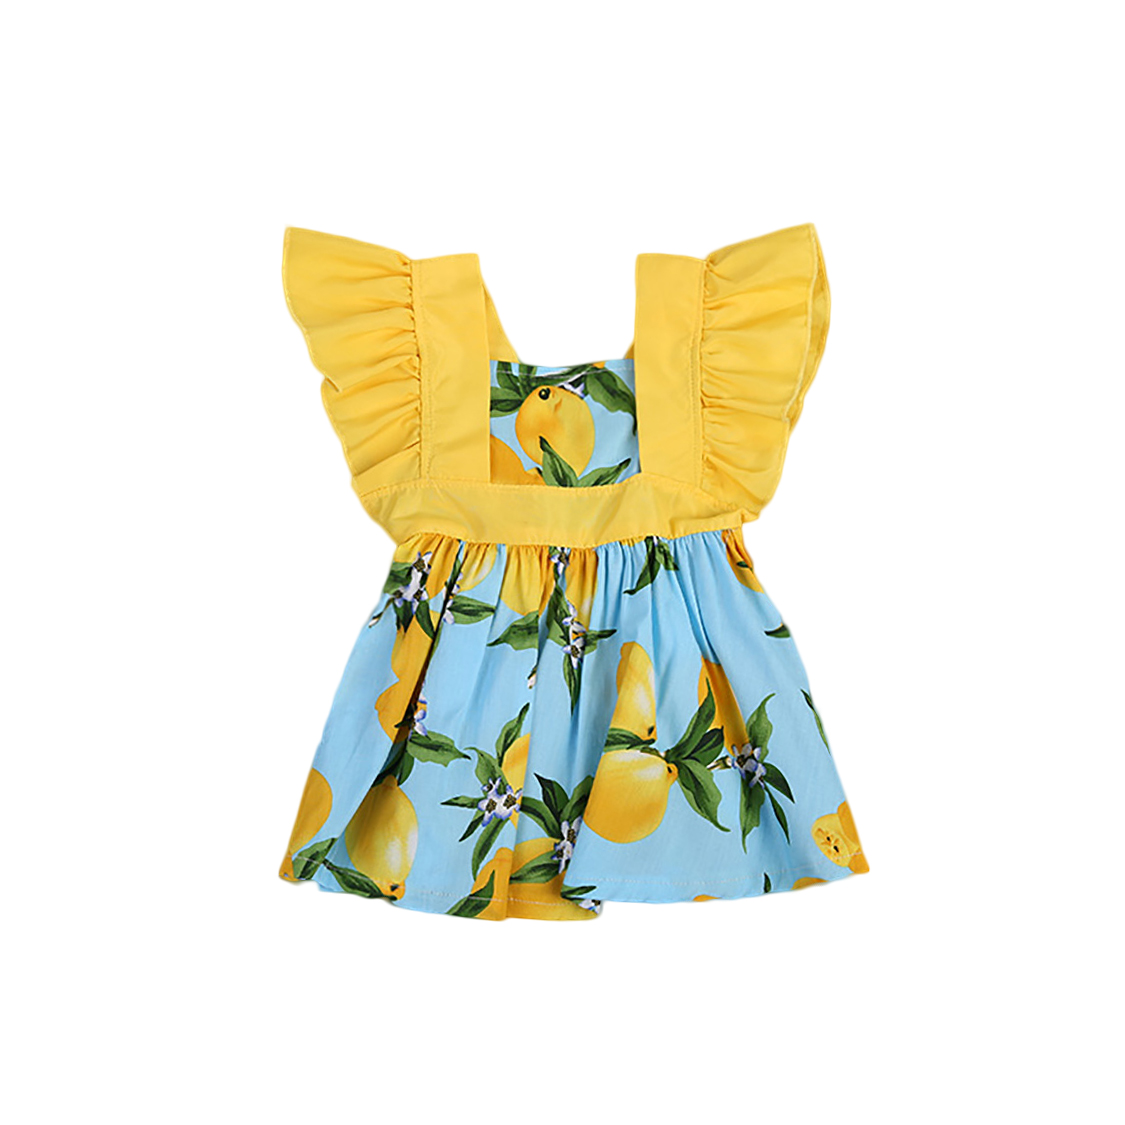 Summer Baby Toddler Kids Girls Clothes Dresses Flower Patchwork Princess Mini Dress Sundress Clothing Girl Casual 0-4T baby kids girls infant princess clothes dresses bowknot sleeveless cotton ruffled clothing dress sundress girl